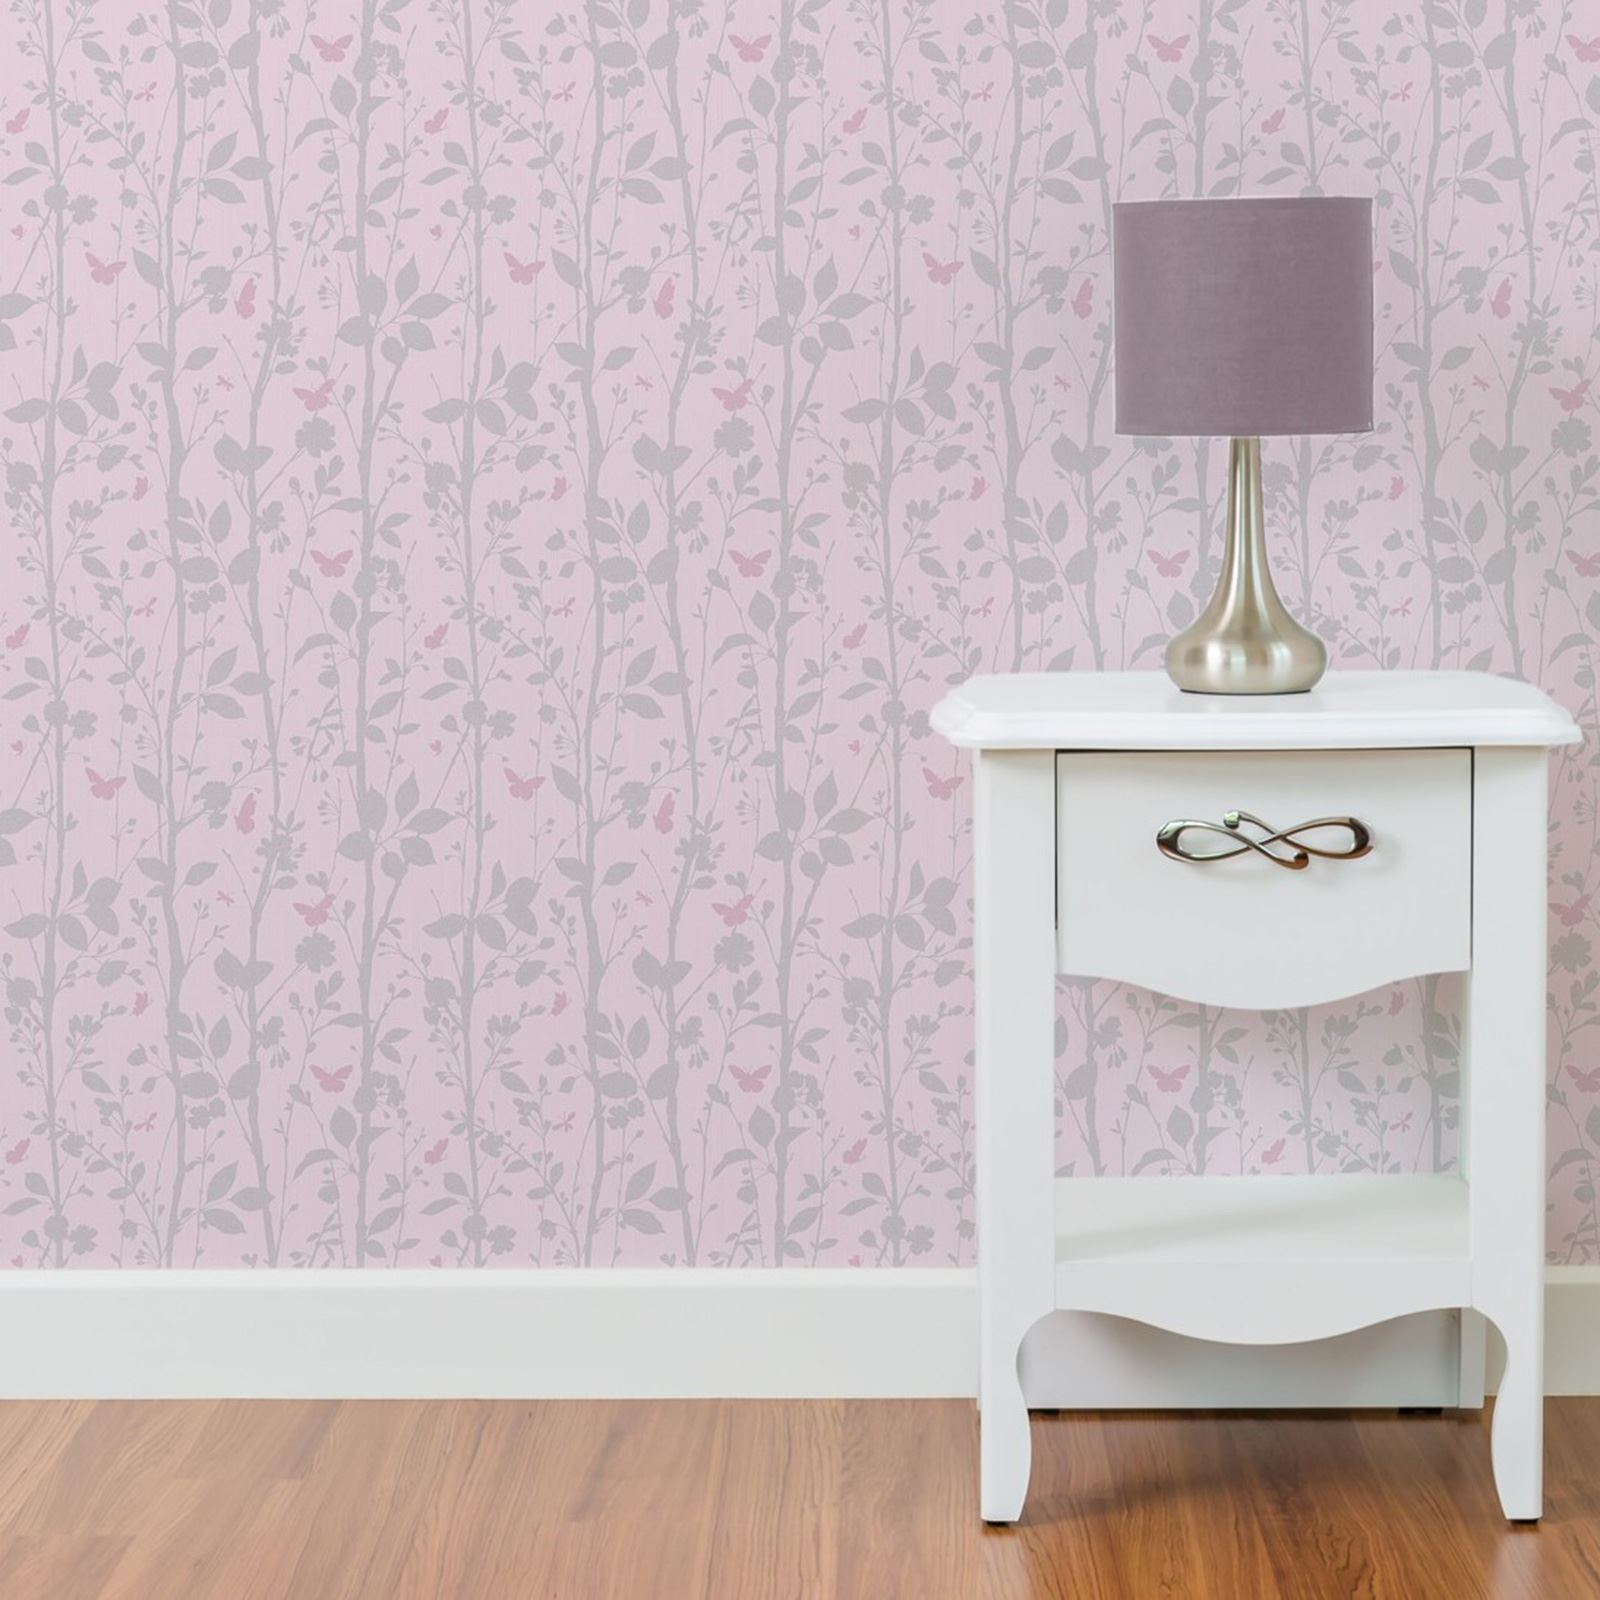 DAZZLE TREES   BUTTERFLIES PINK SILVER GLITTER WALLPAPER BEDROOM WALL DECOR  NEW. DAZZLE TREES  amp  BUTTERFLIES PINK SILVER GLITTER WALLPAPER